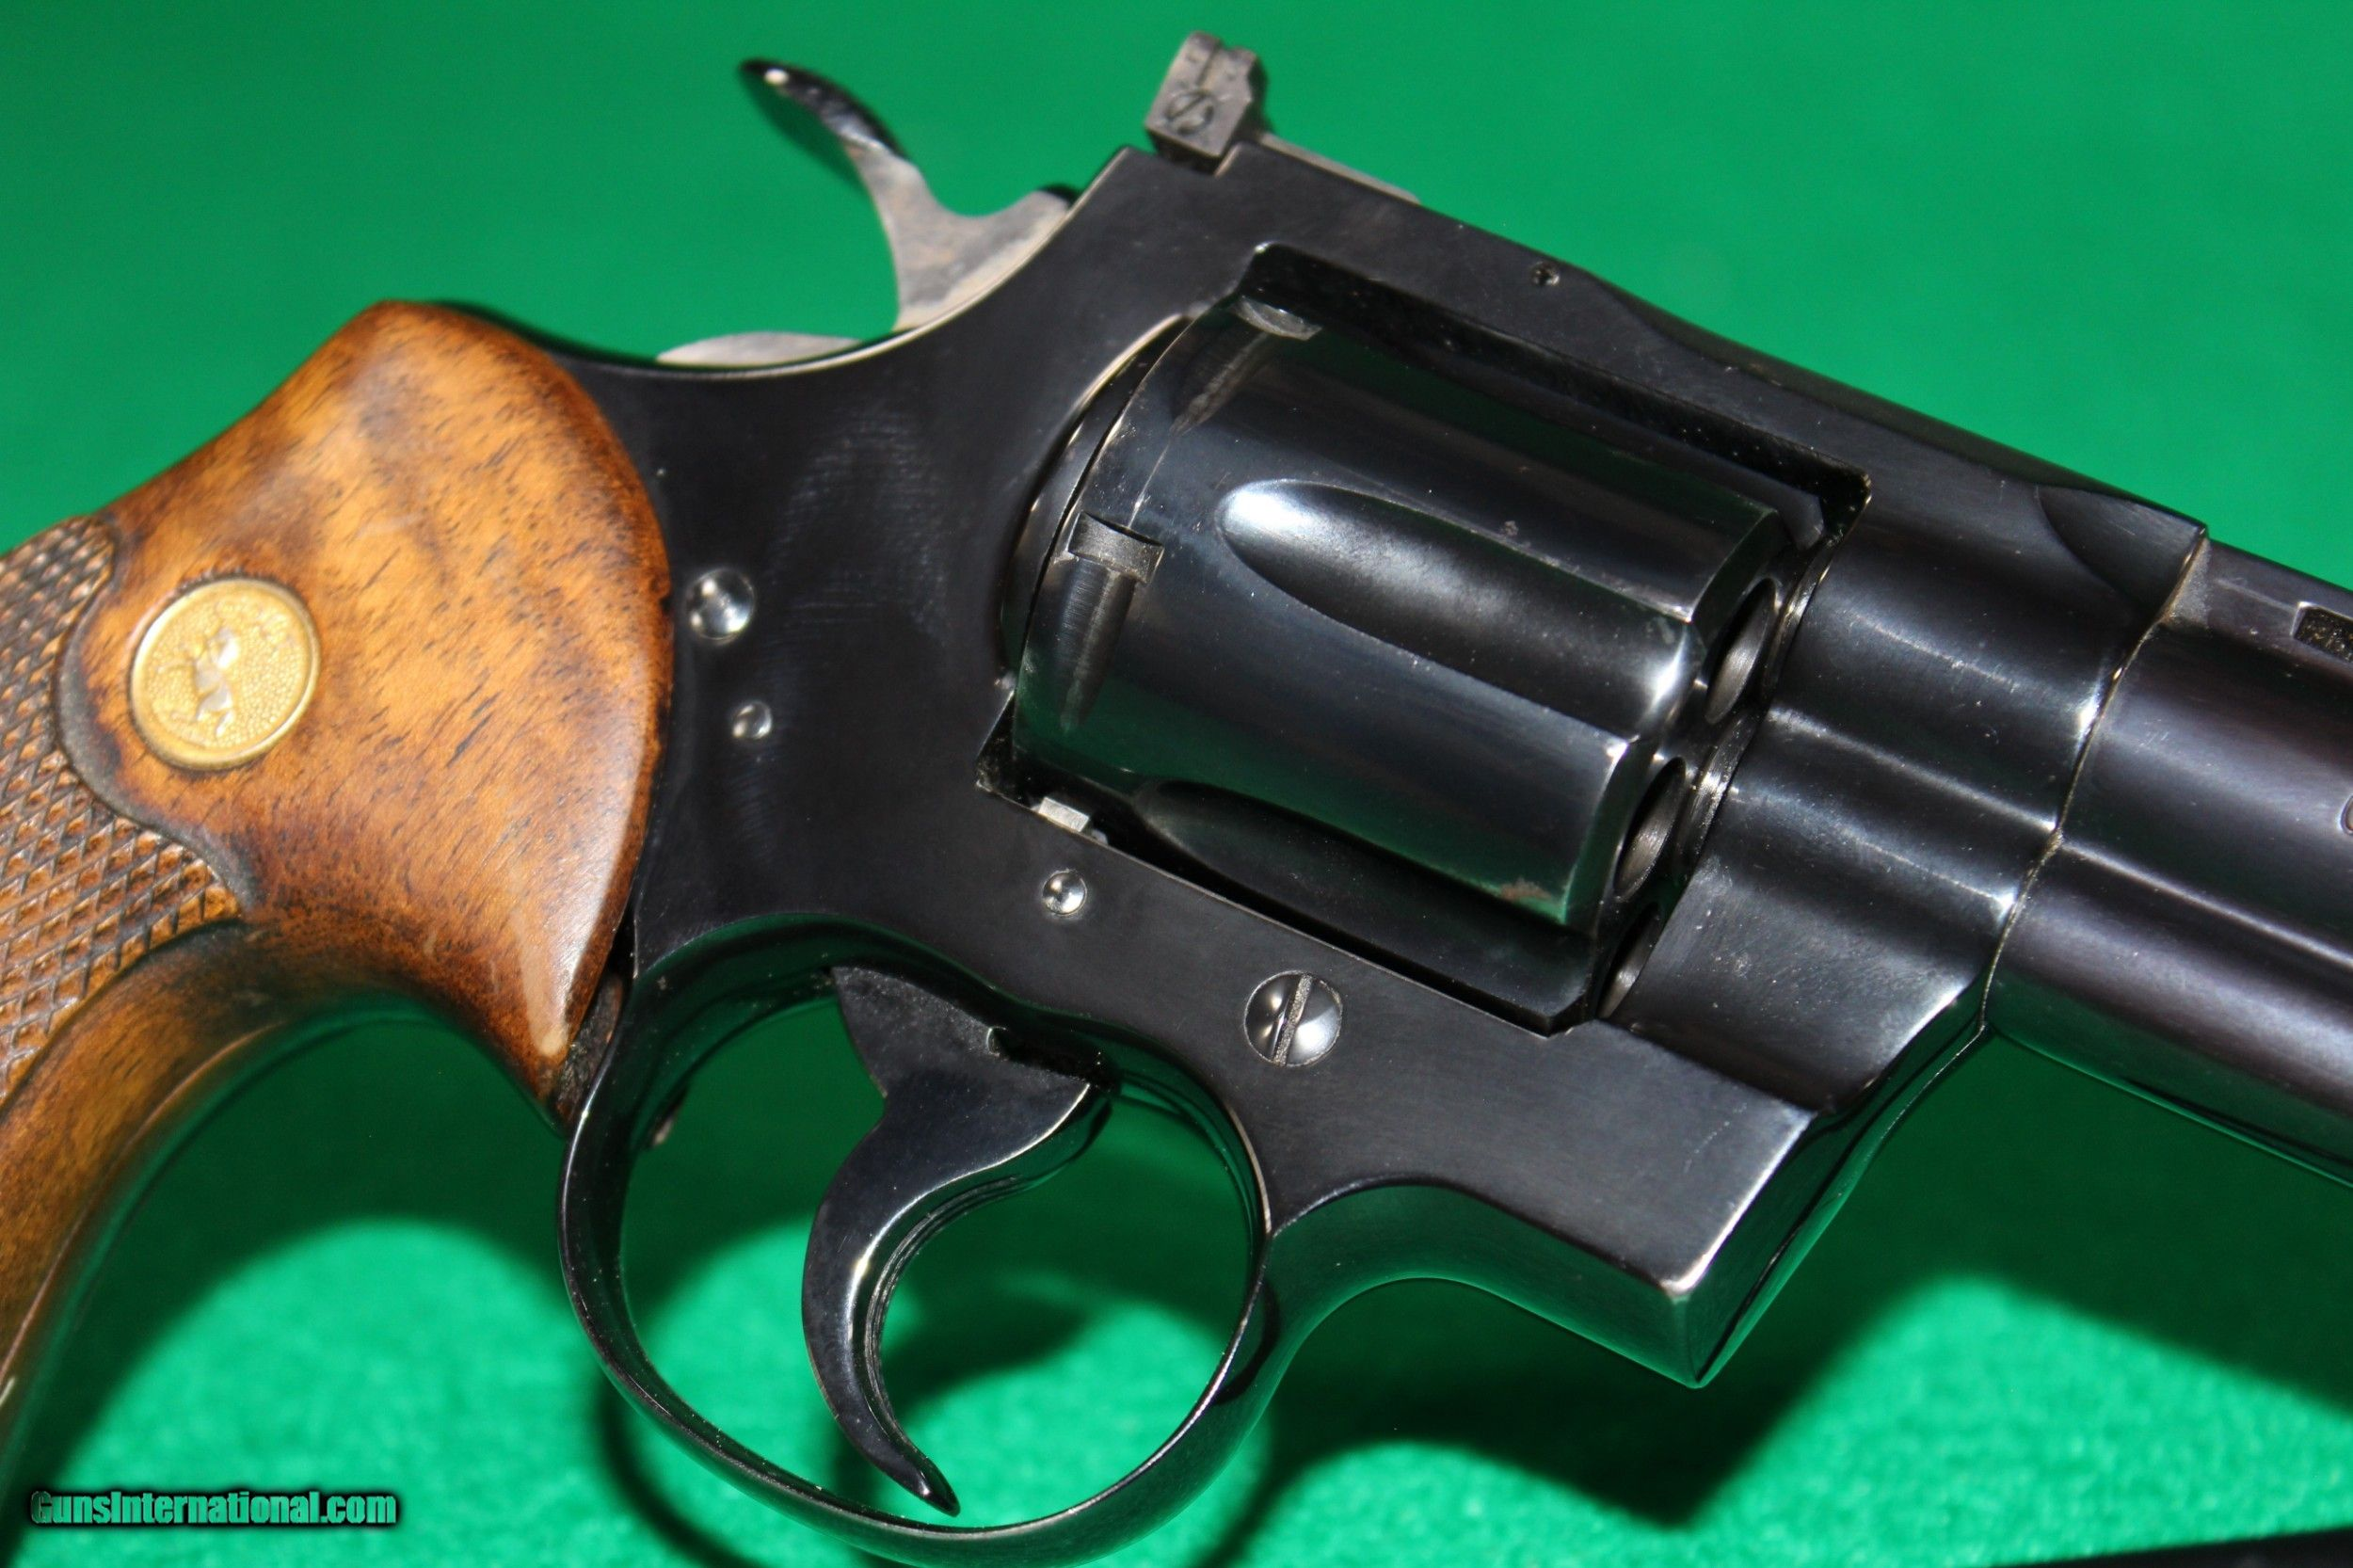 Early Model 1964 Colt Python  357 Magnum Revolver with 6 inch Barrel